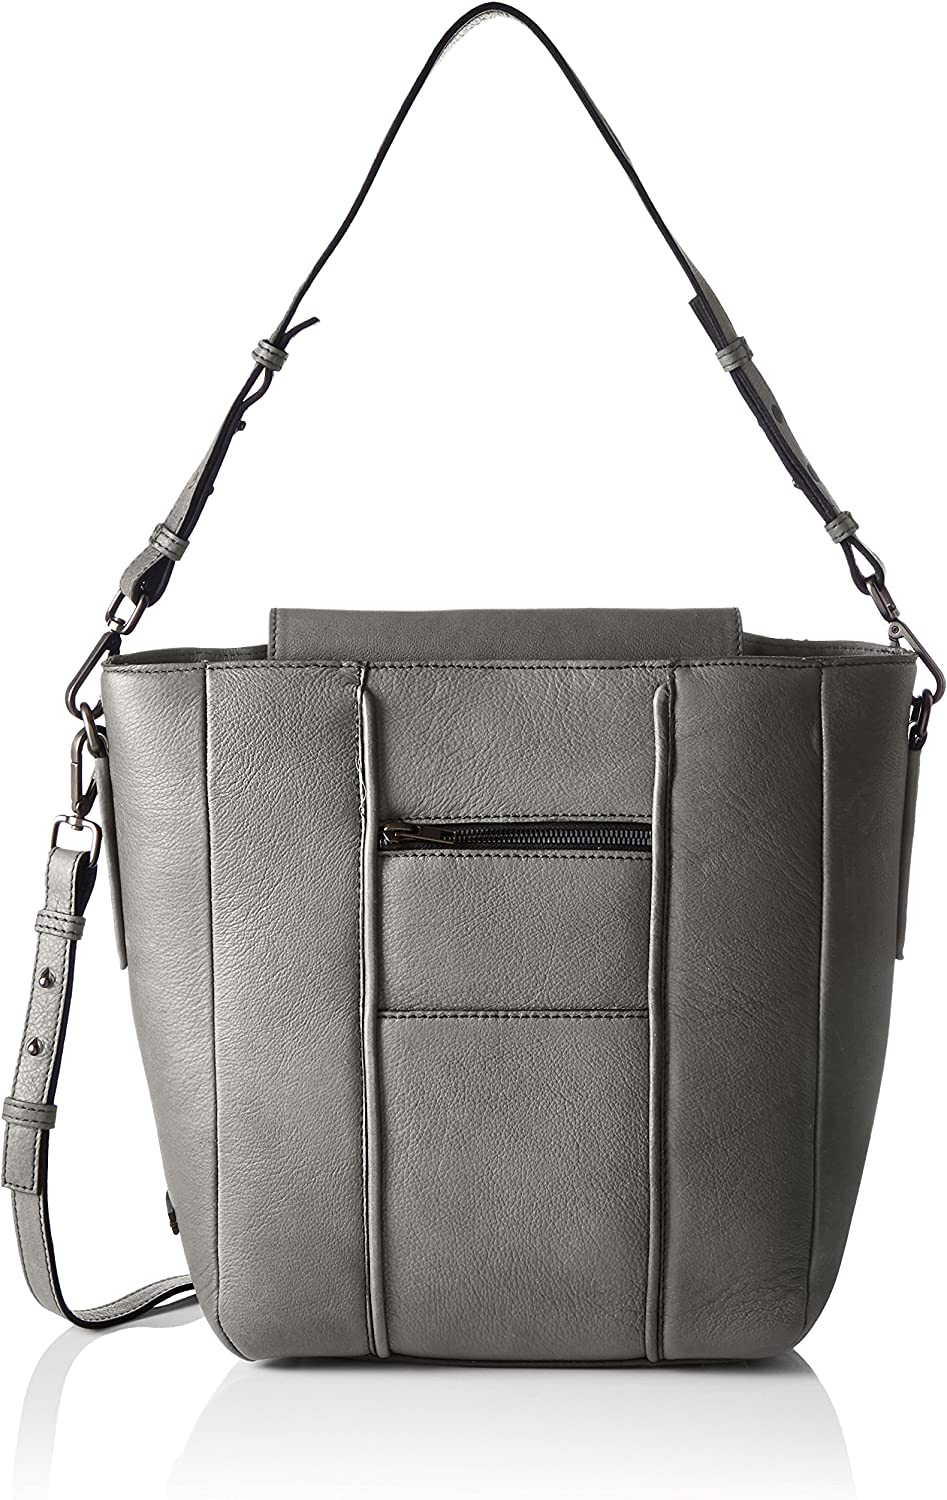 Marc O'Polo Women's Fortyfive CrossBody Bag